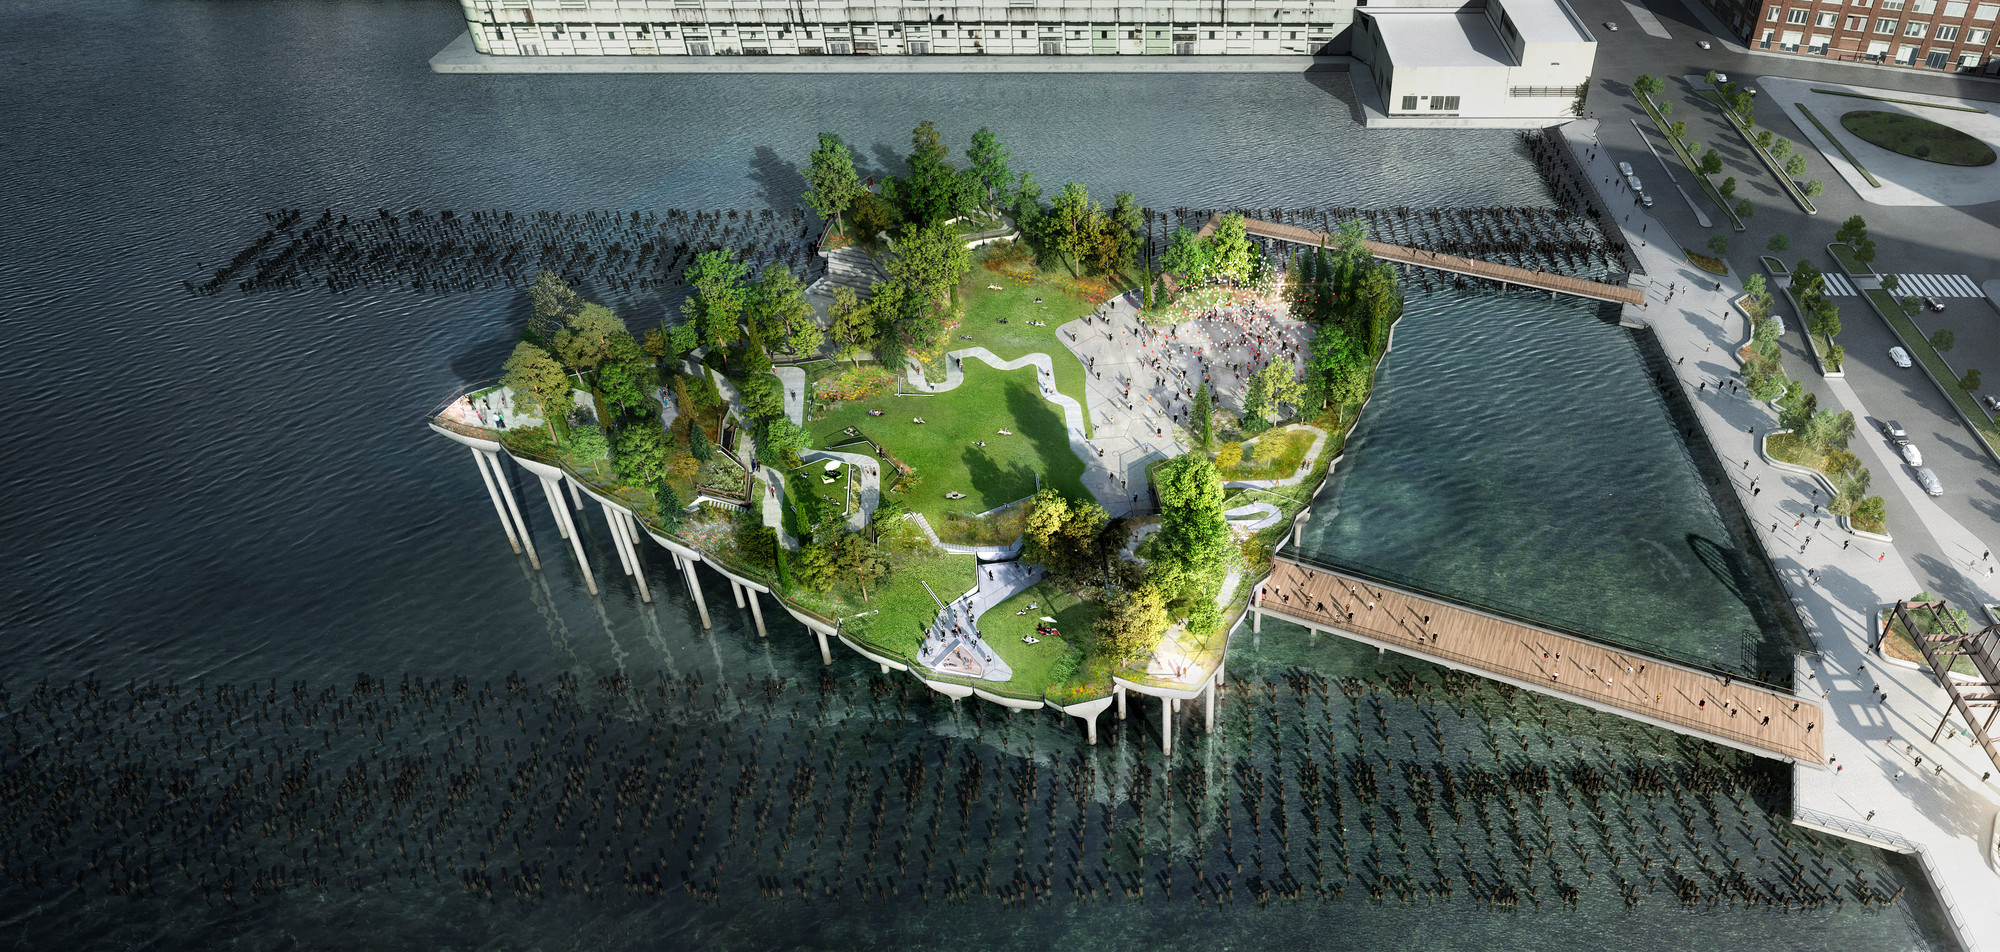 Pier 55. Image © Pier55, Inc. and Heatherwick Studio, Renders by Luxigon